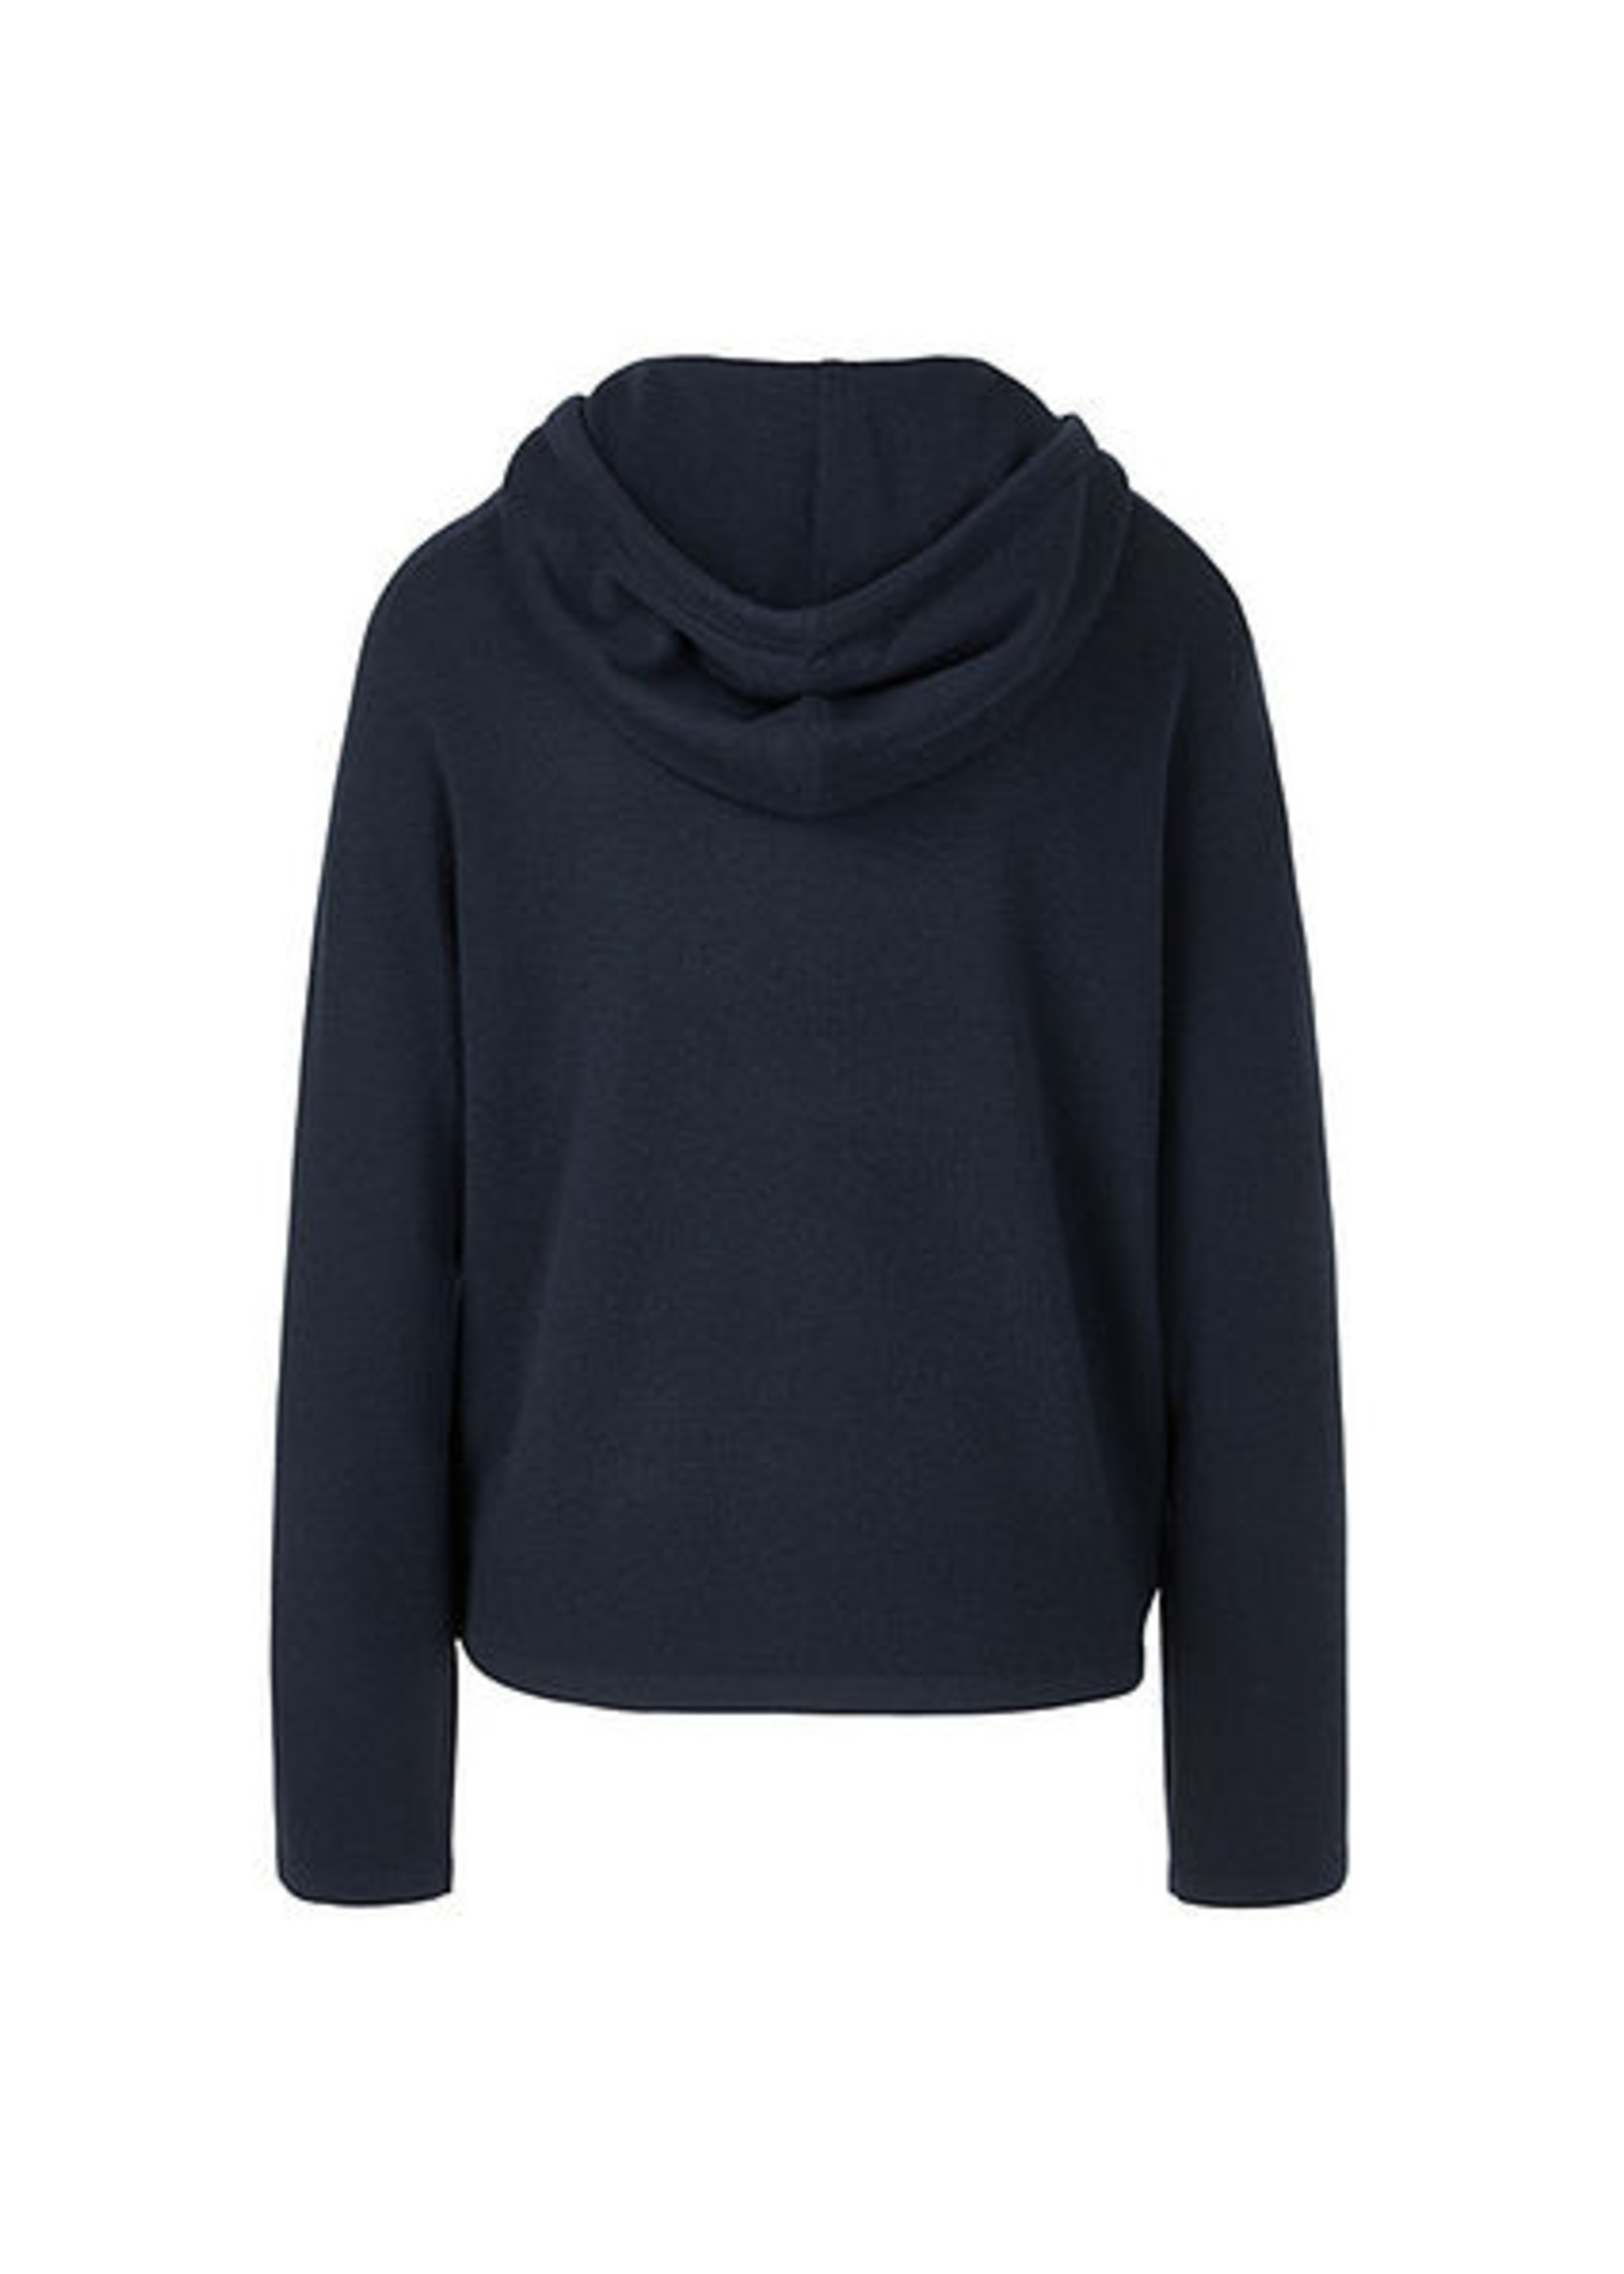 Marccain Sports Sweater RS 41.13 M72 paradise blue